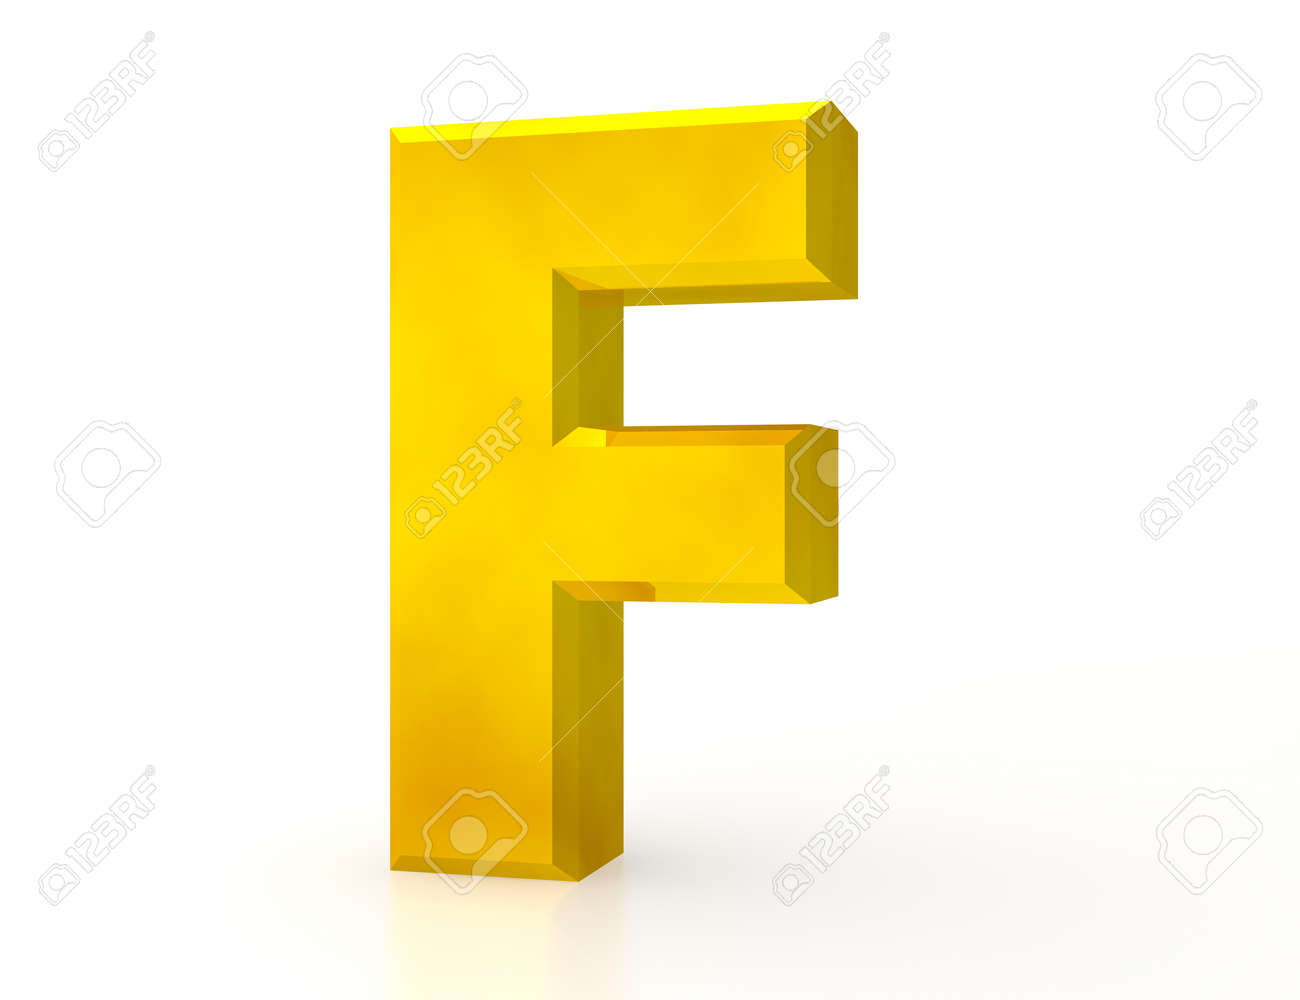 the Gold letter F on white background 3d rendering - 131434439